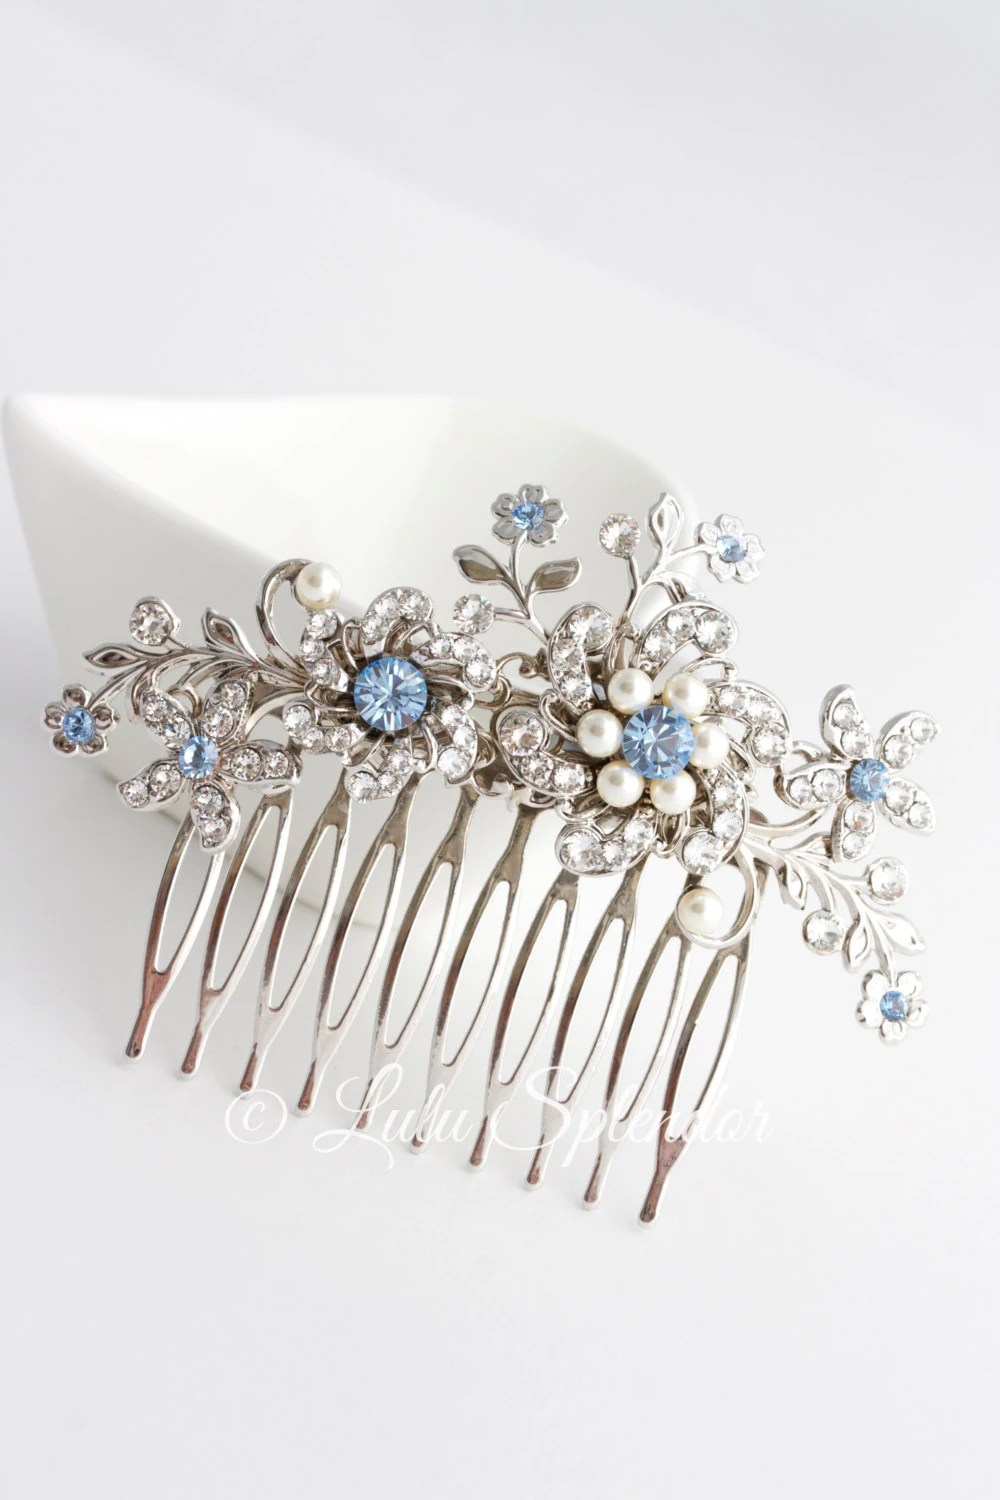 Wedding Hair Comb Light Sapphire Blue Bridal Hair Accessories